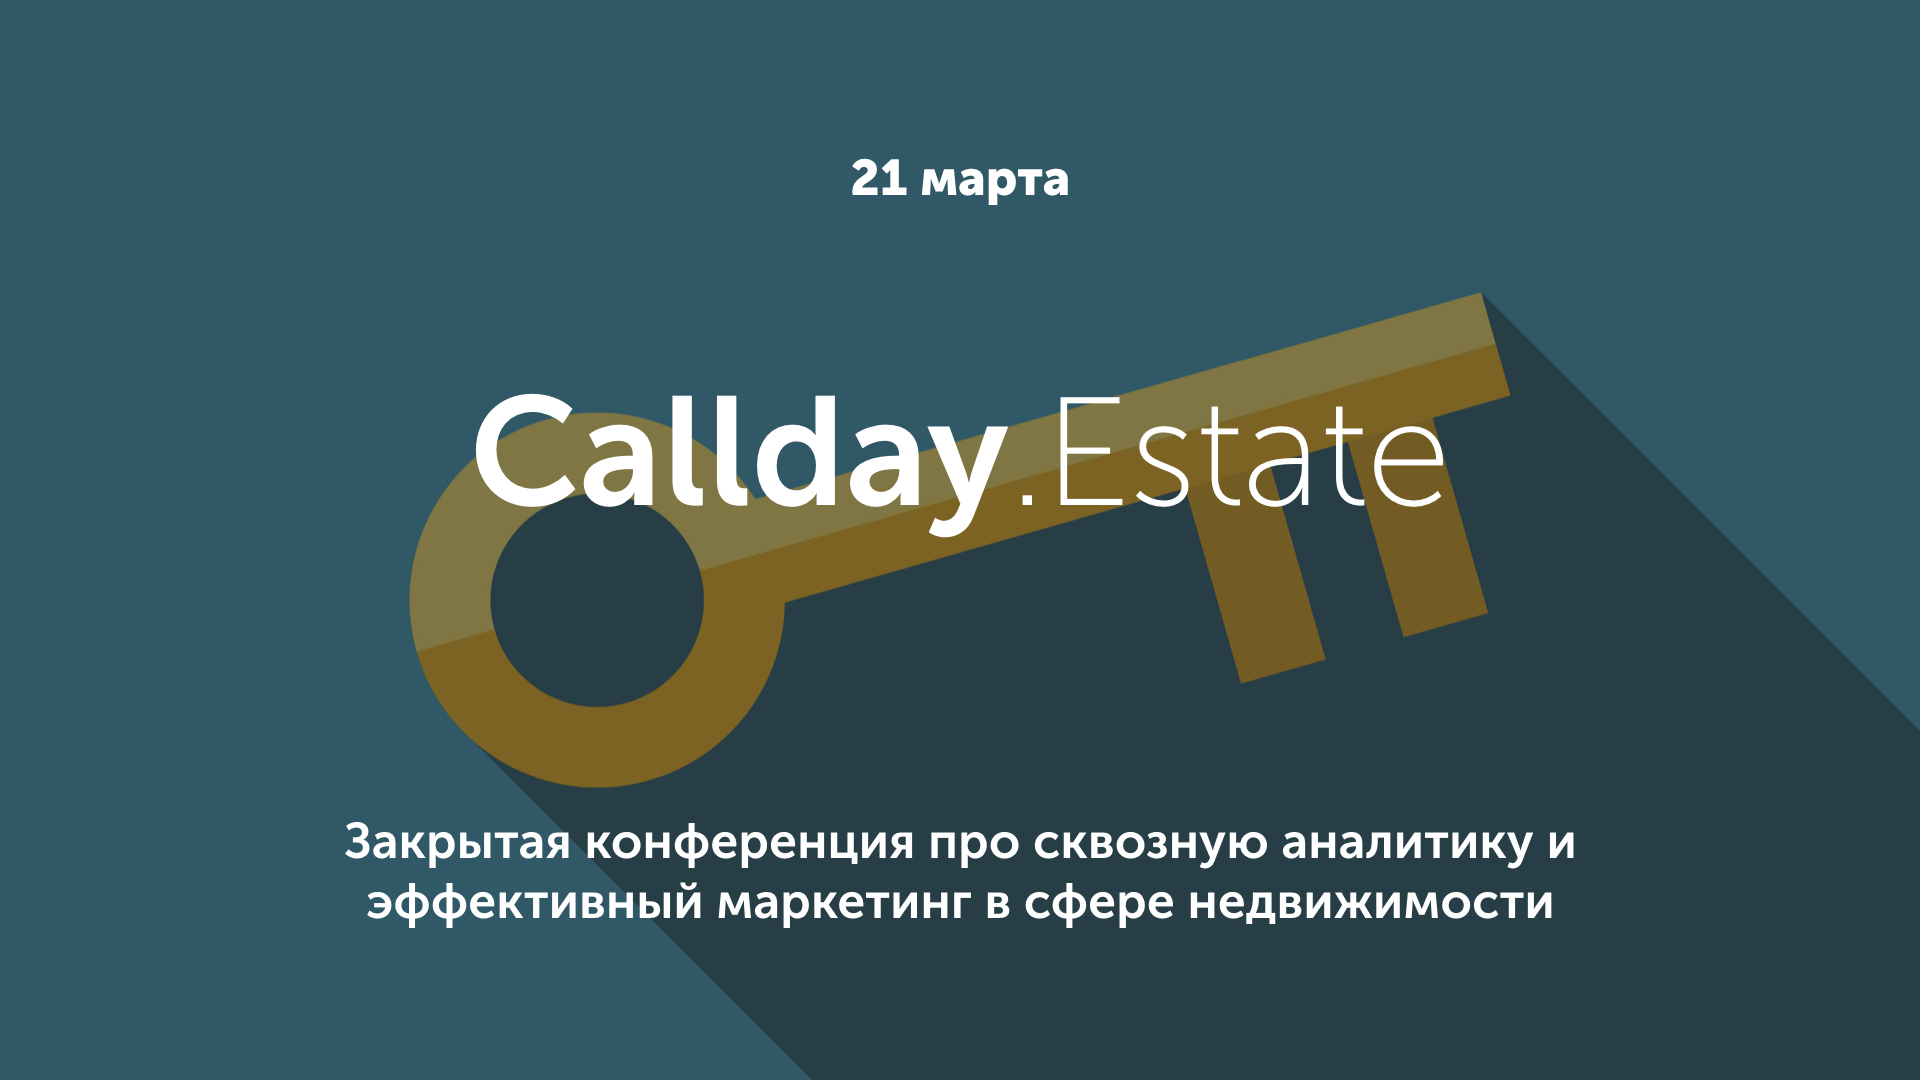 Callday.Estate